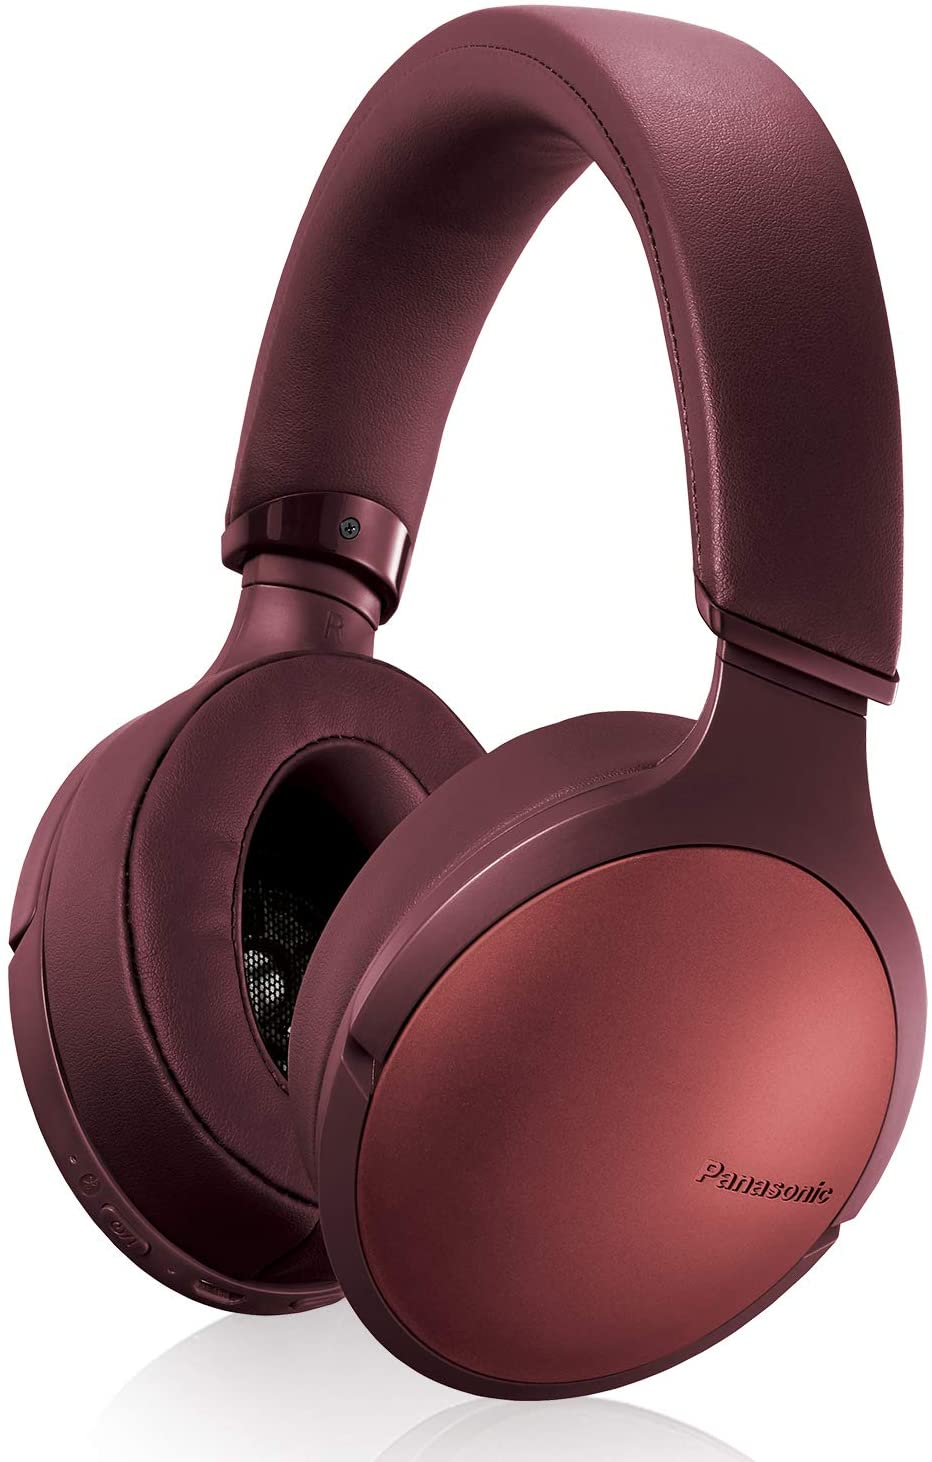 Panasonic Premium Hi-Res Wireless Bluetooth Over The Ear Headphones with 3D Ear Pads and 3 Sound Modes - RP-HD305B-T (Burnt Copper)